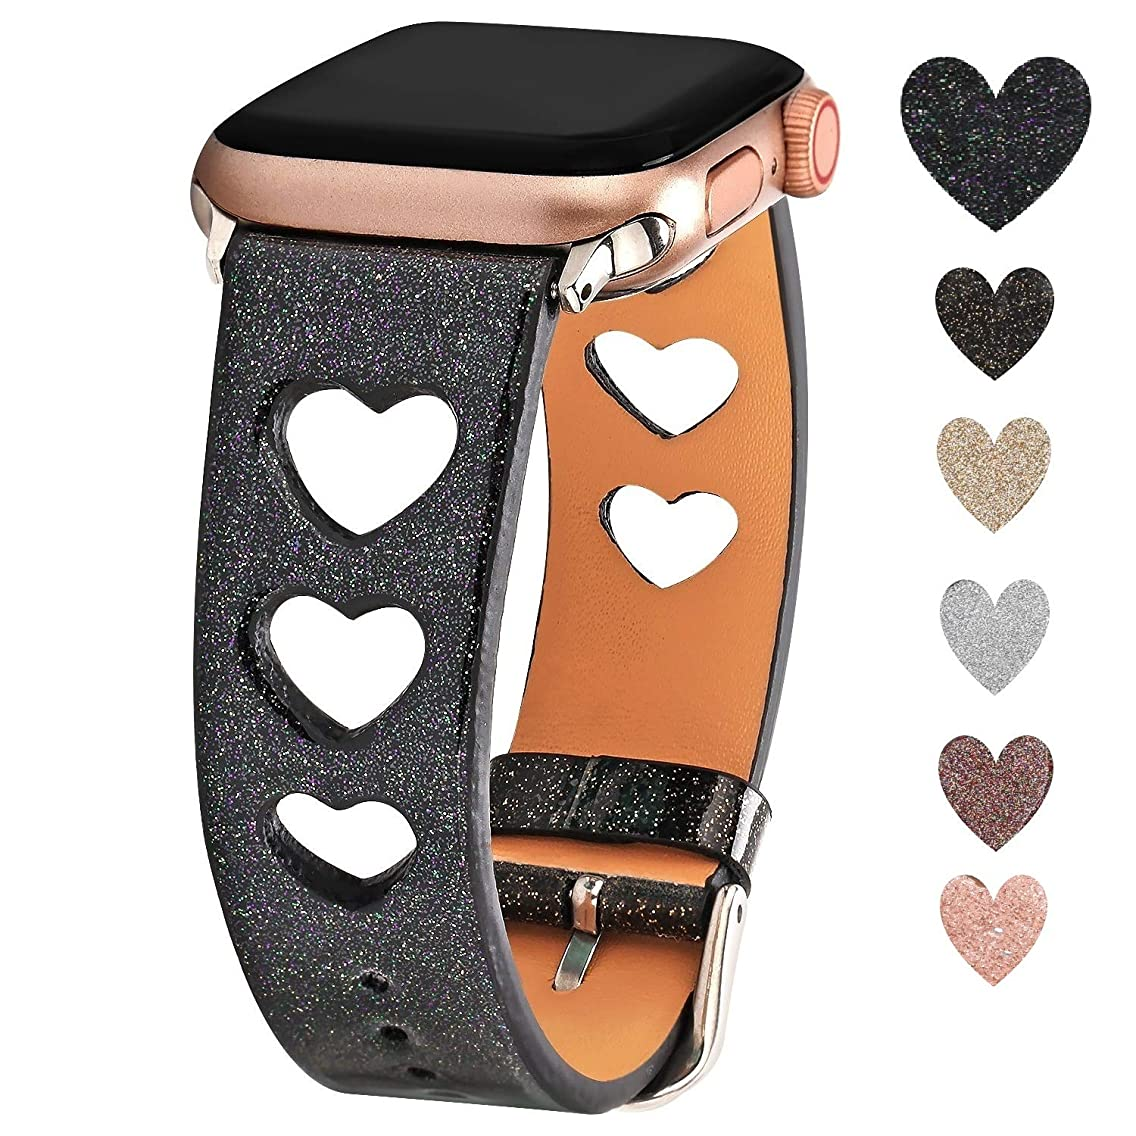 Greaciary Glitter Sparkle Band Compatible for Apple Watch 38mm 40mm 42mm 44mm,Luxury Shiny Unique Heart Shaped Style Women Girls Replacement Wristbands for iWatch